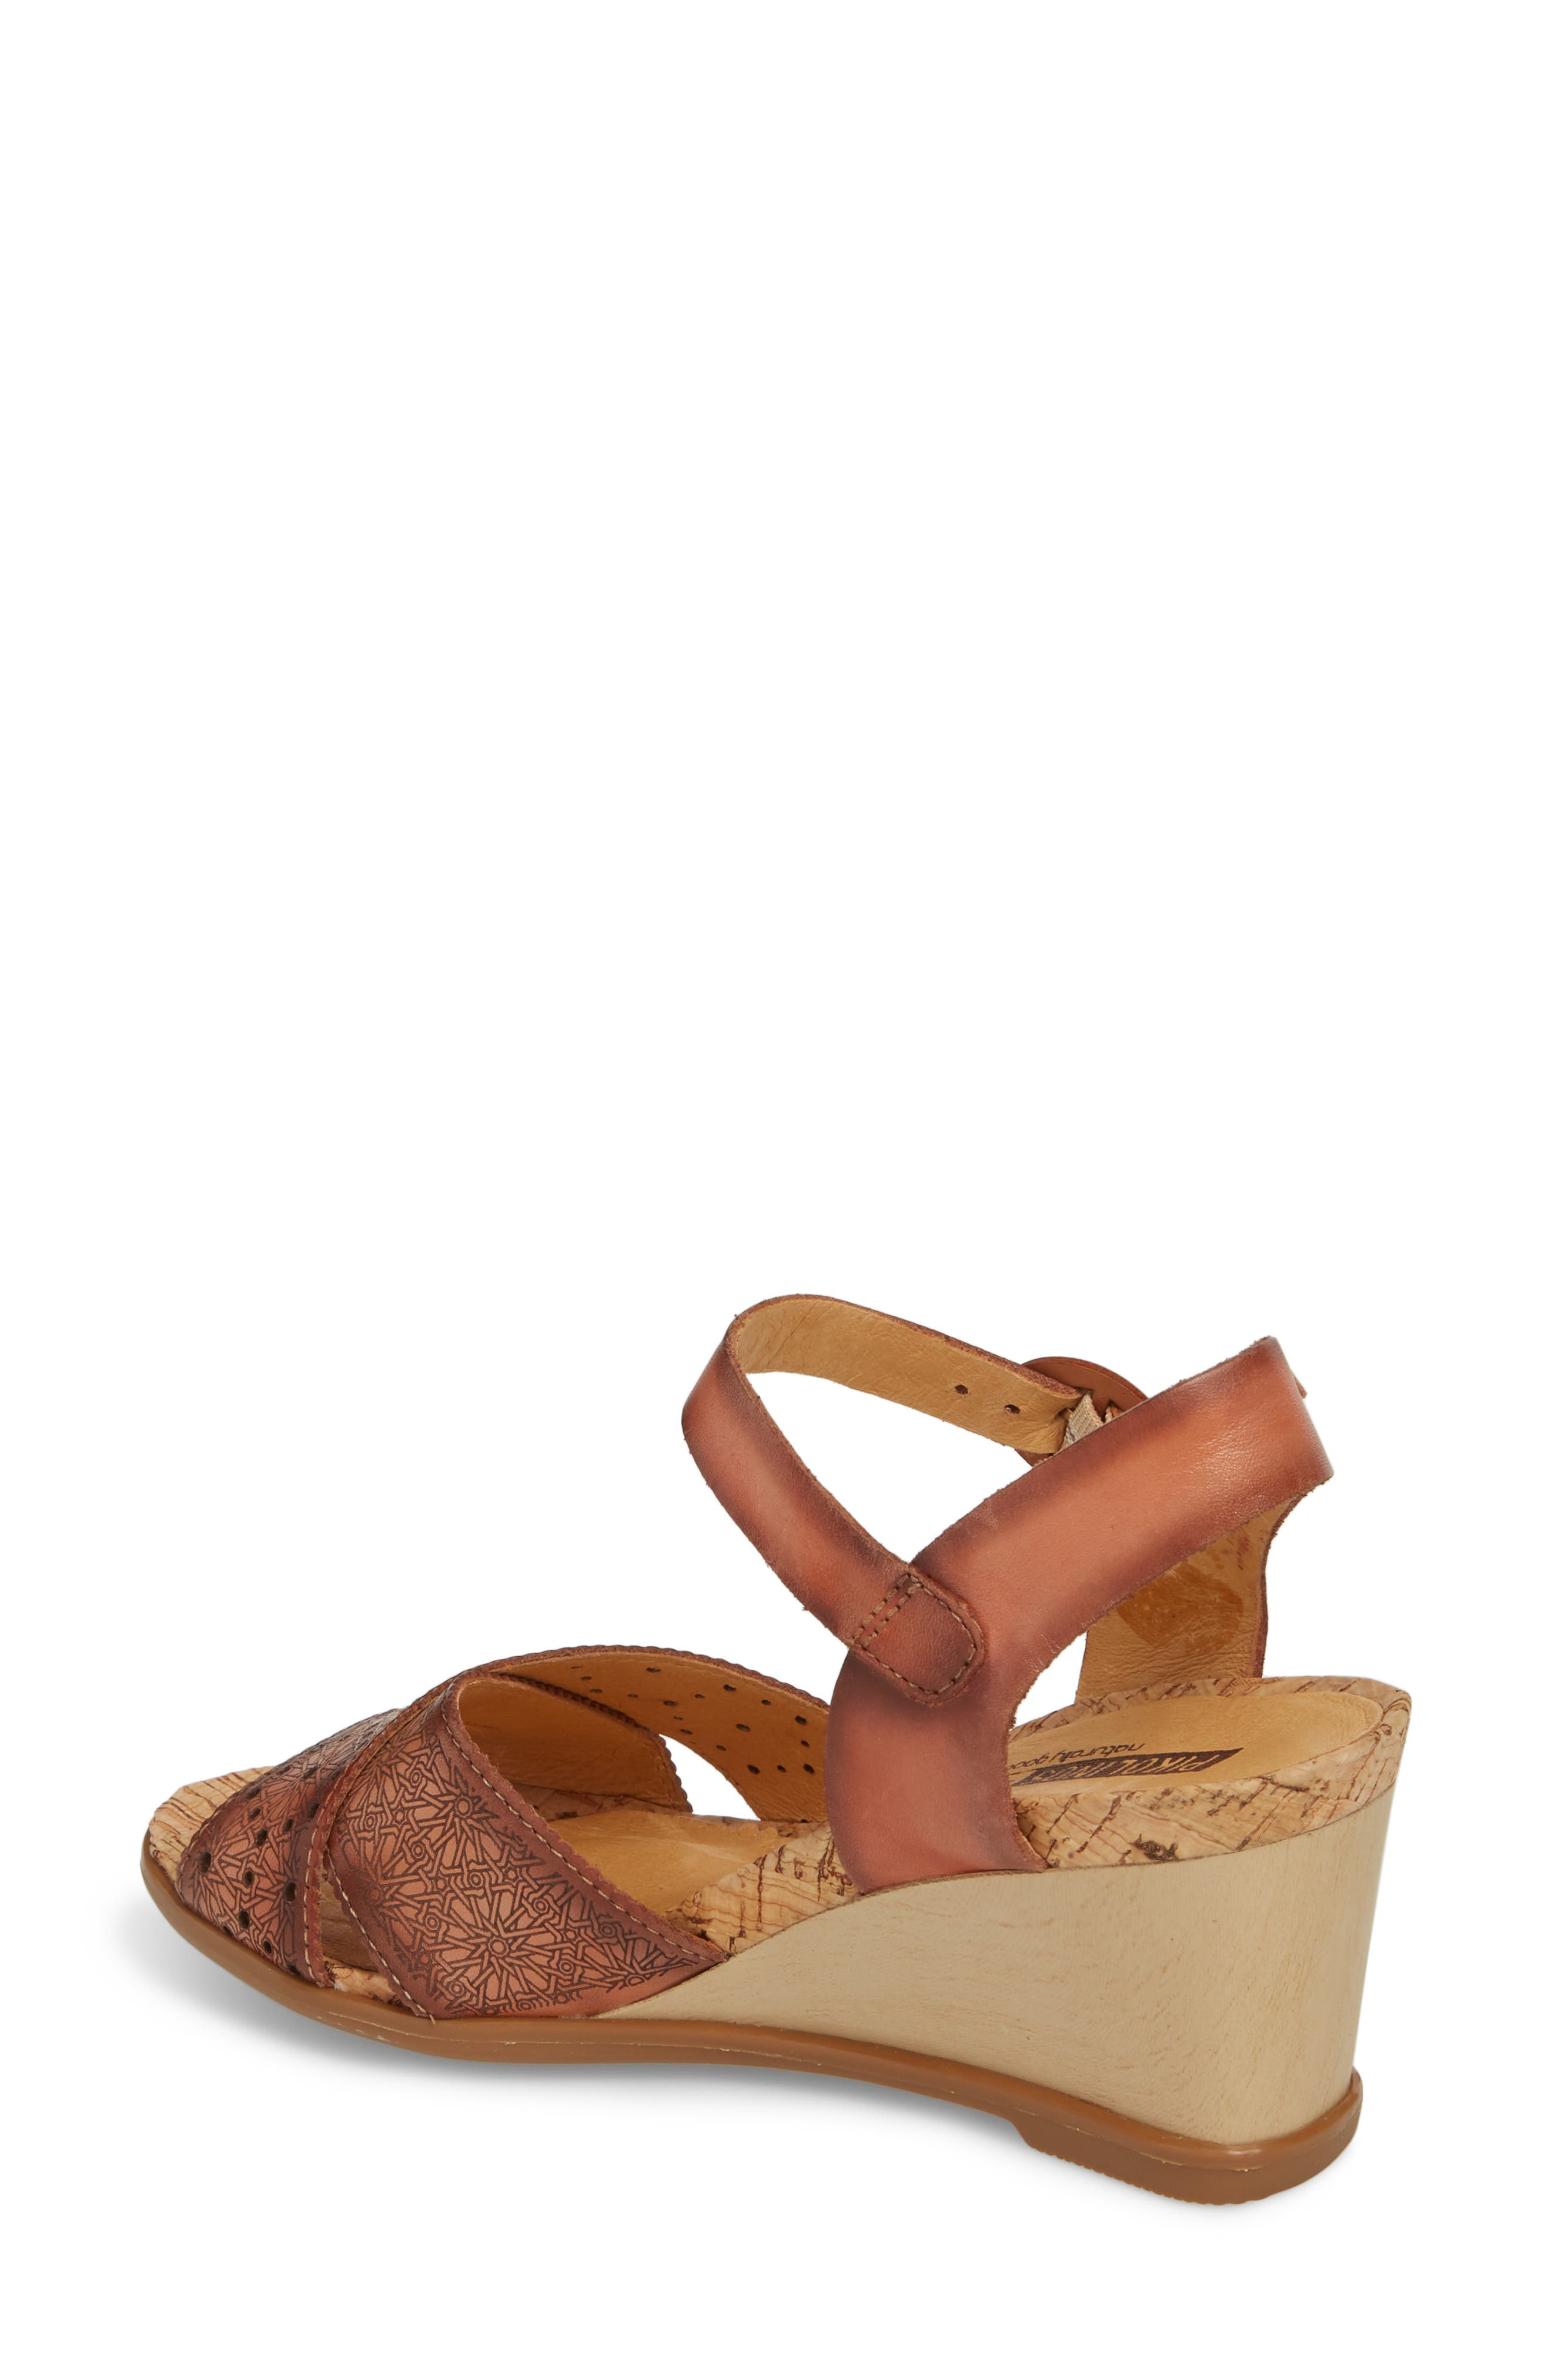 Vigo Wedge Sandal,                             Alternate thumbnail 2, color,                             FLAMINGO LEATHER